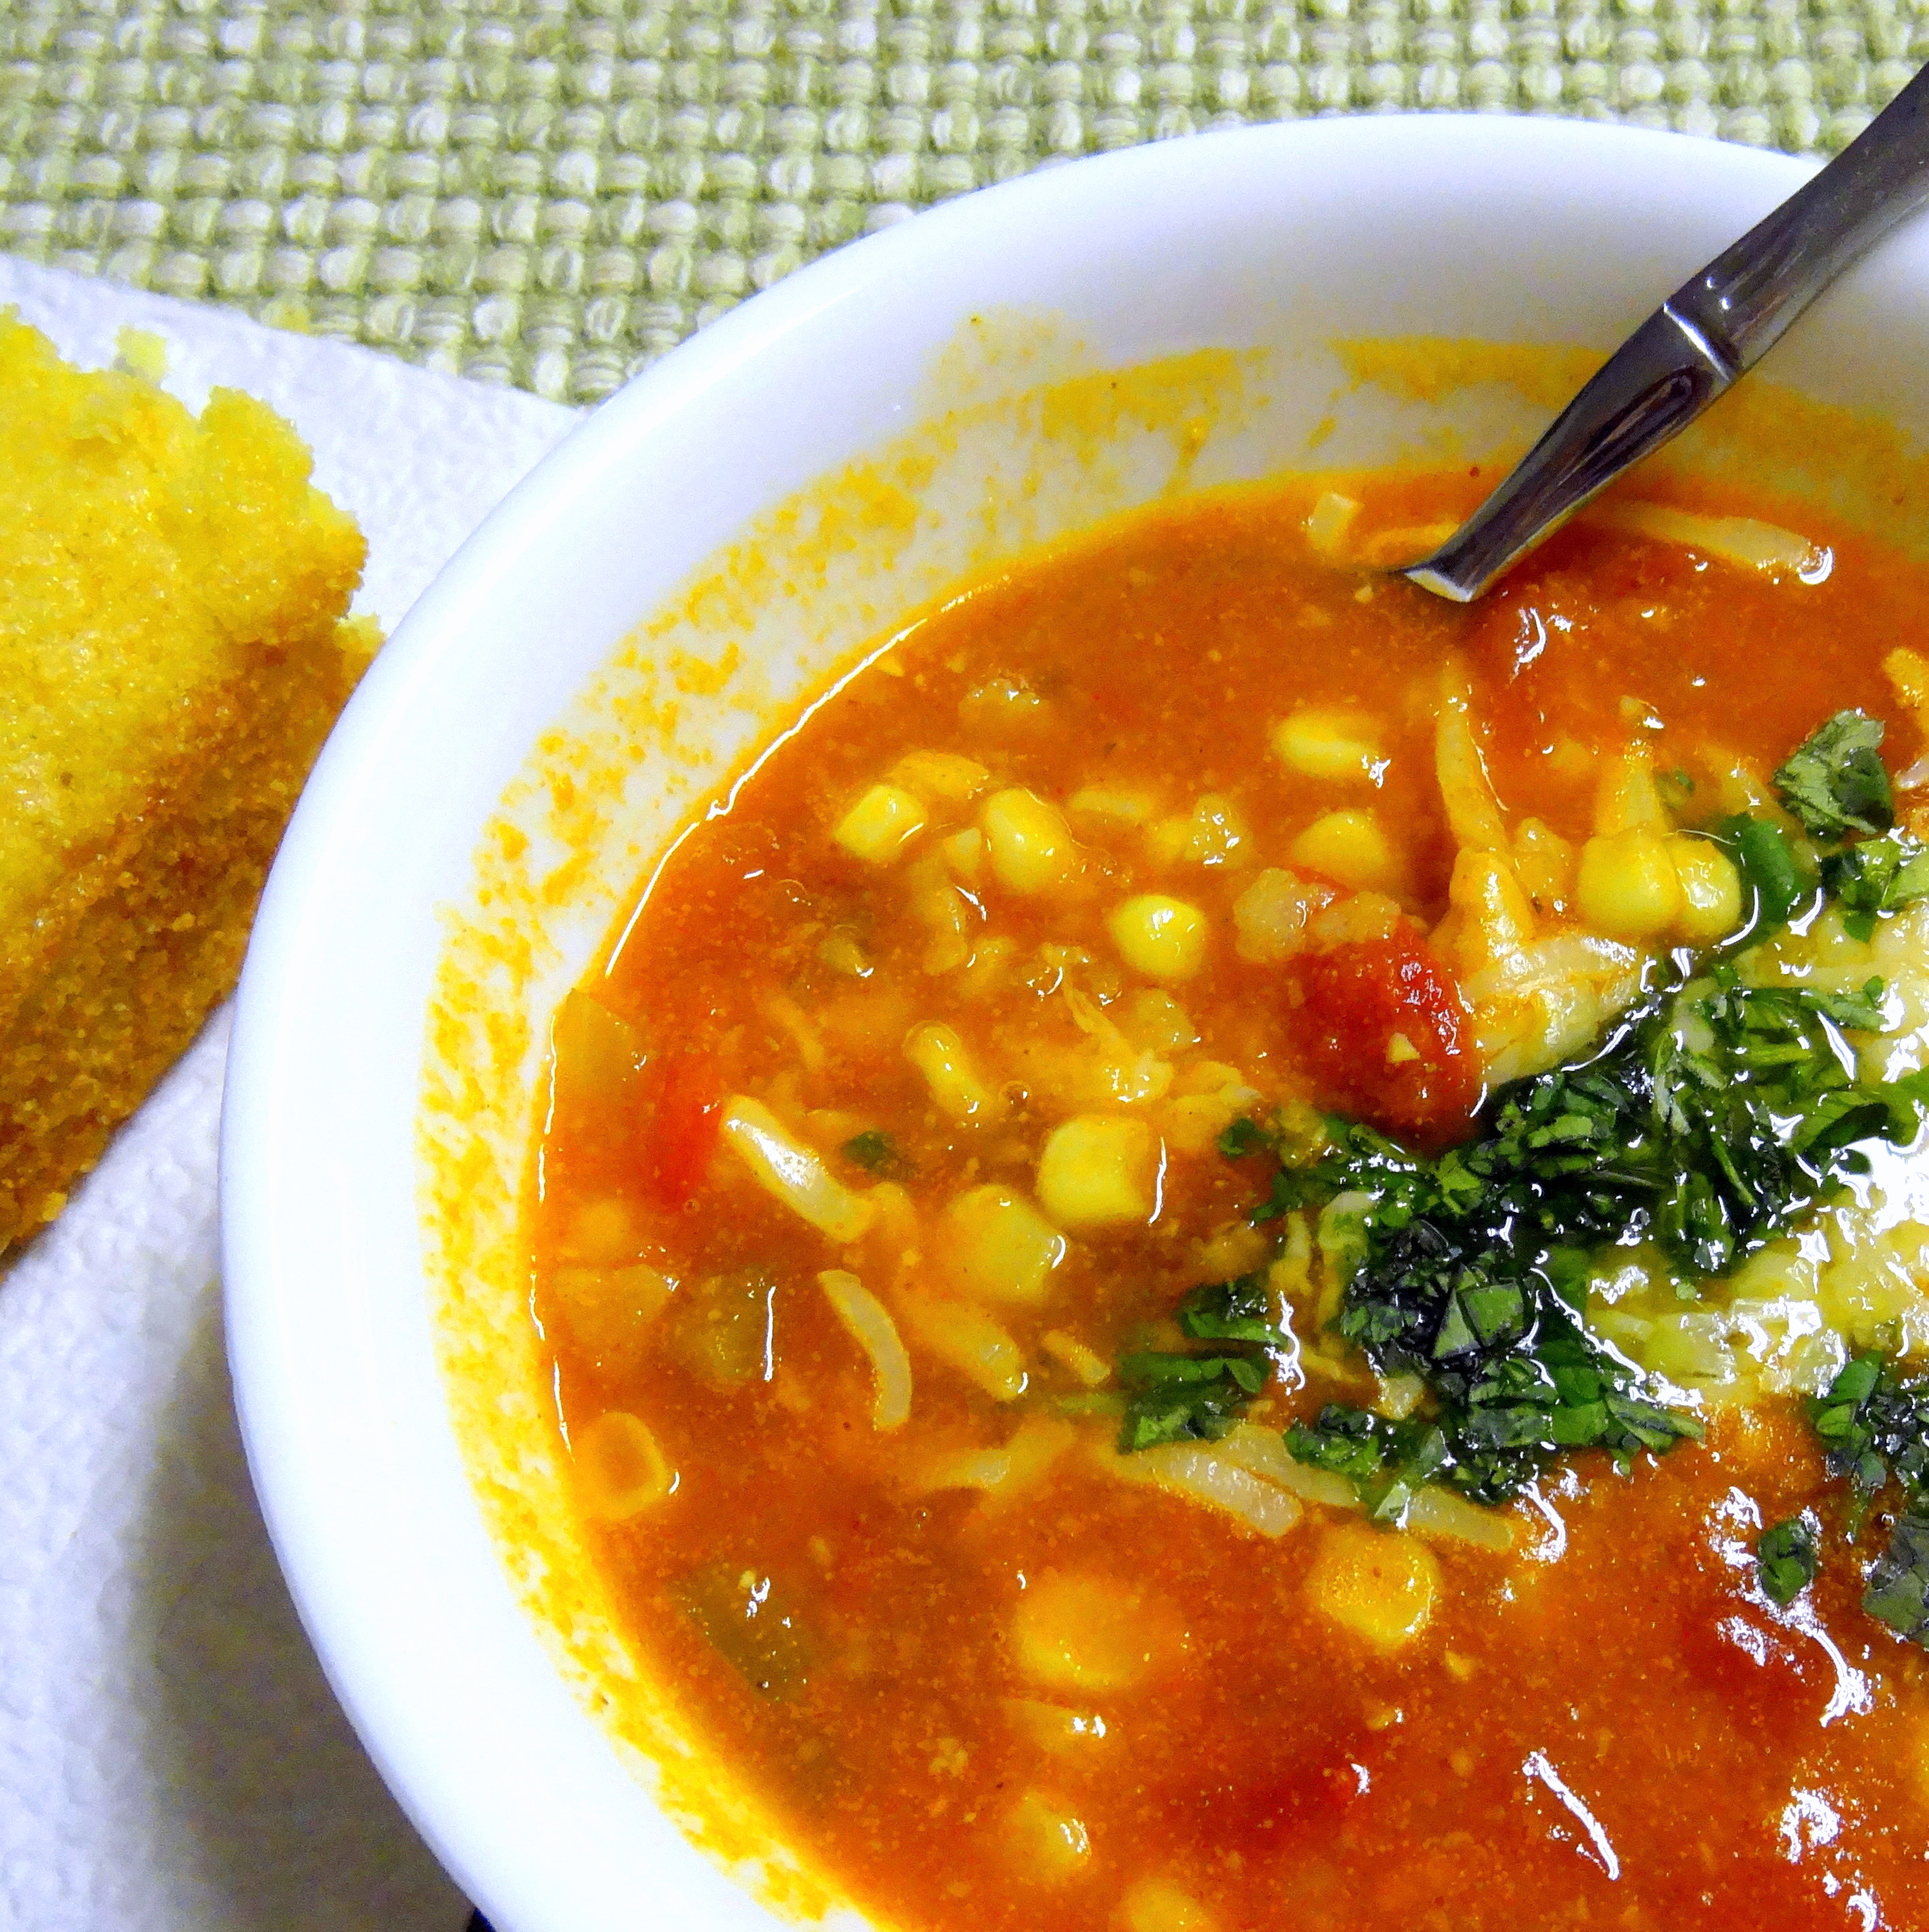 Sedona corn soup